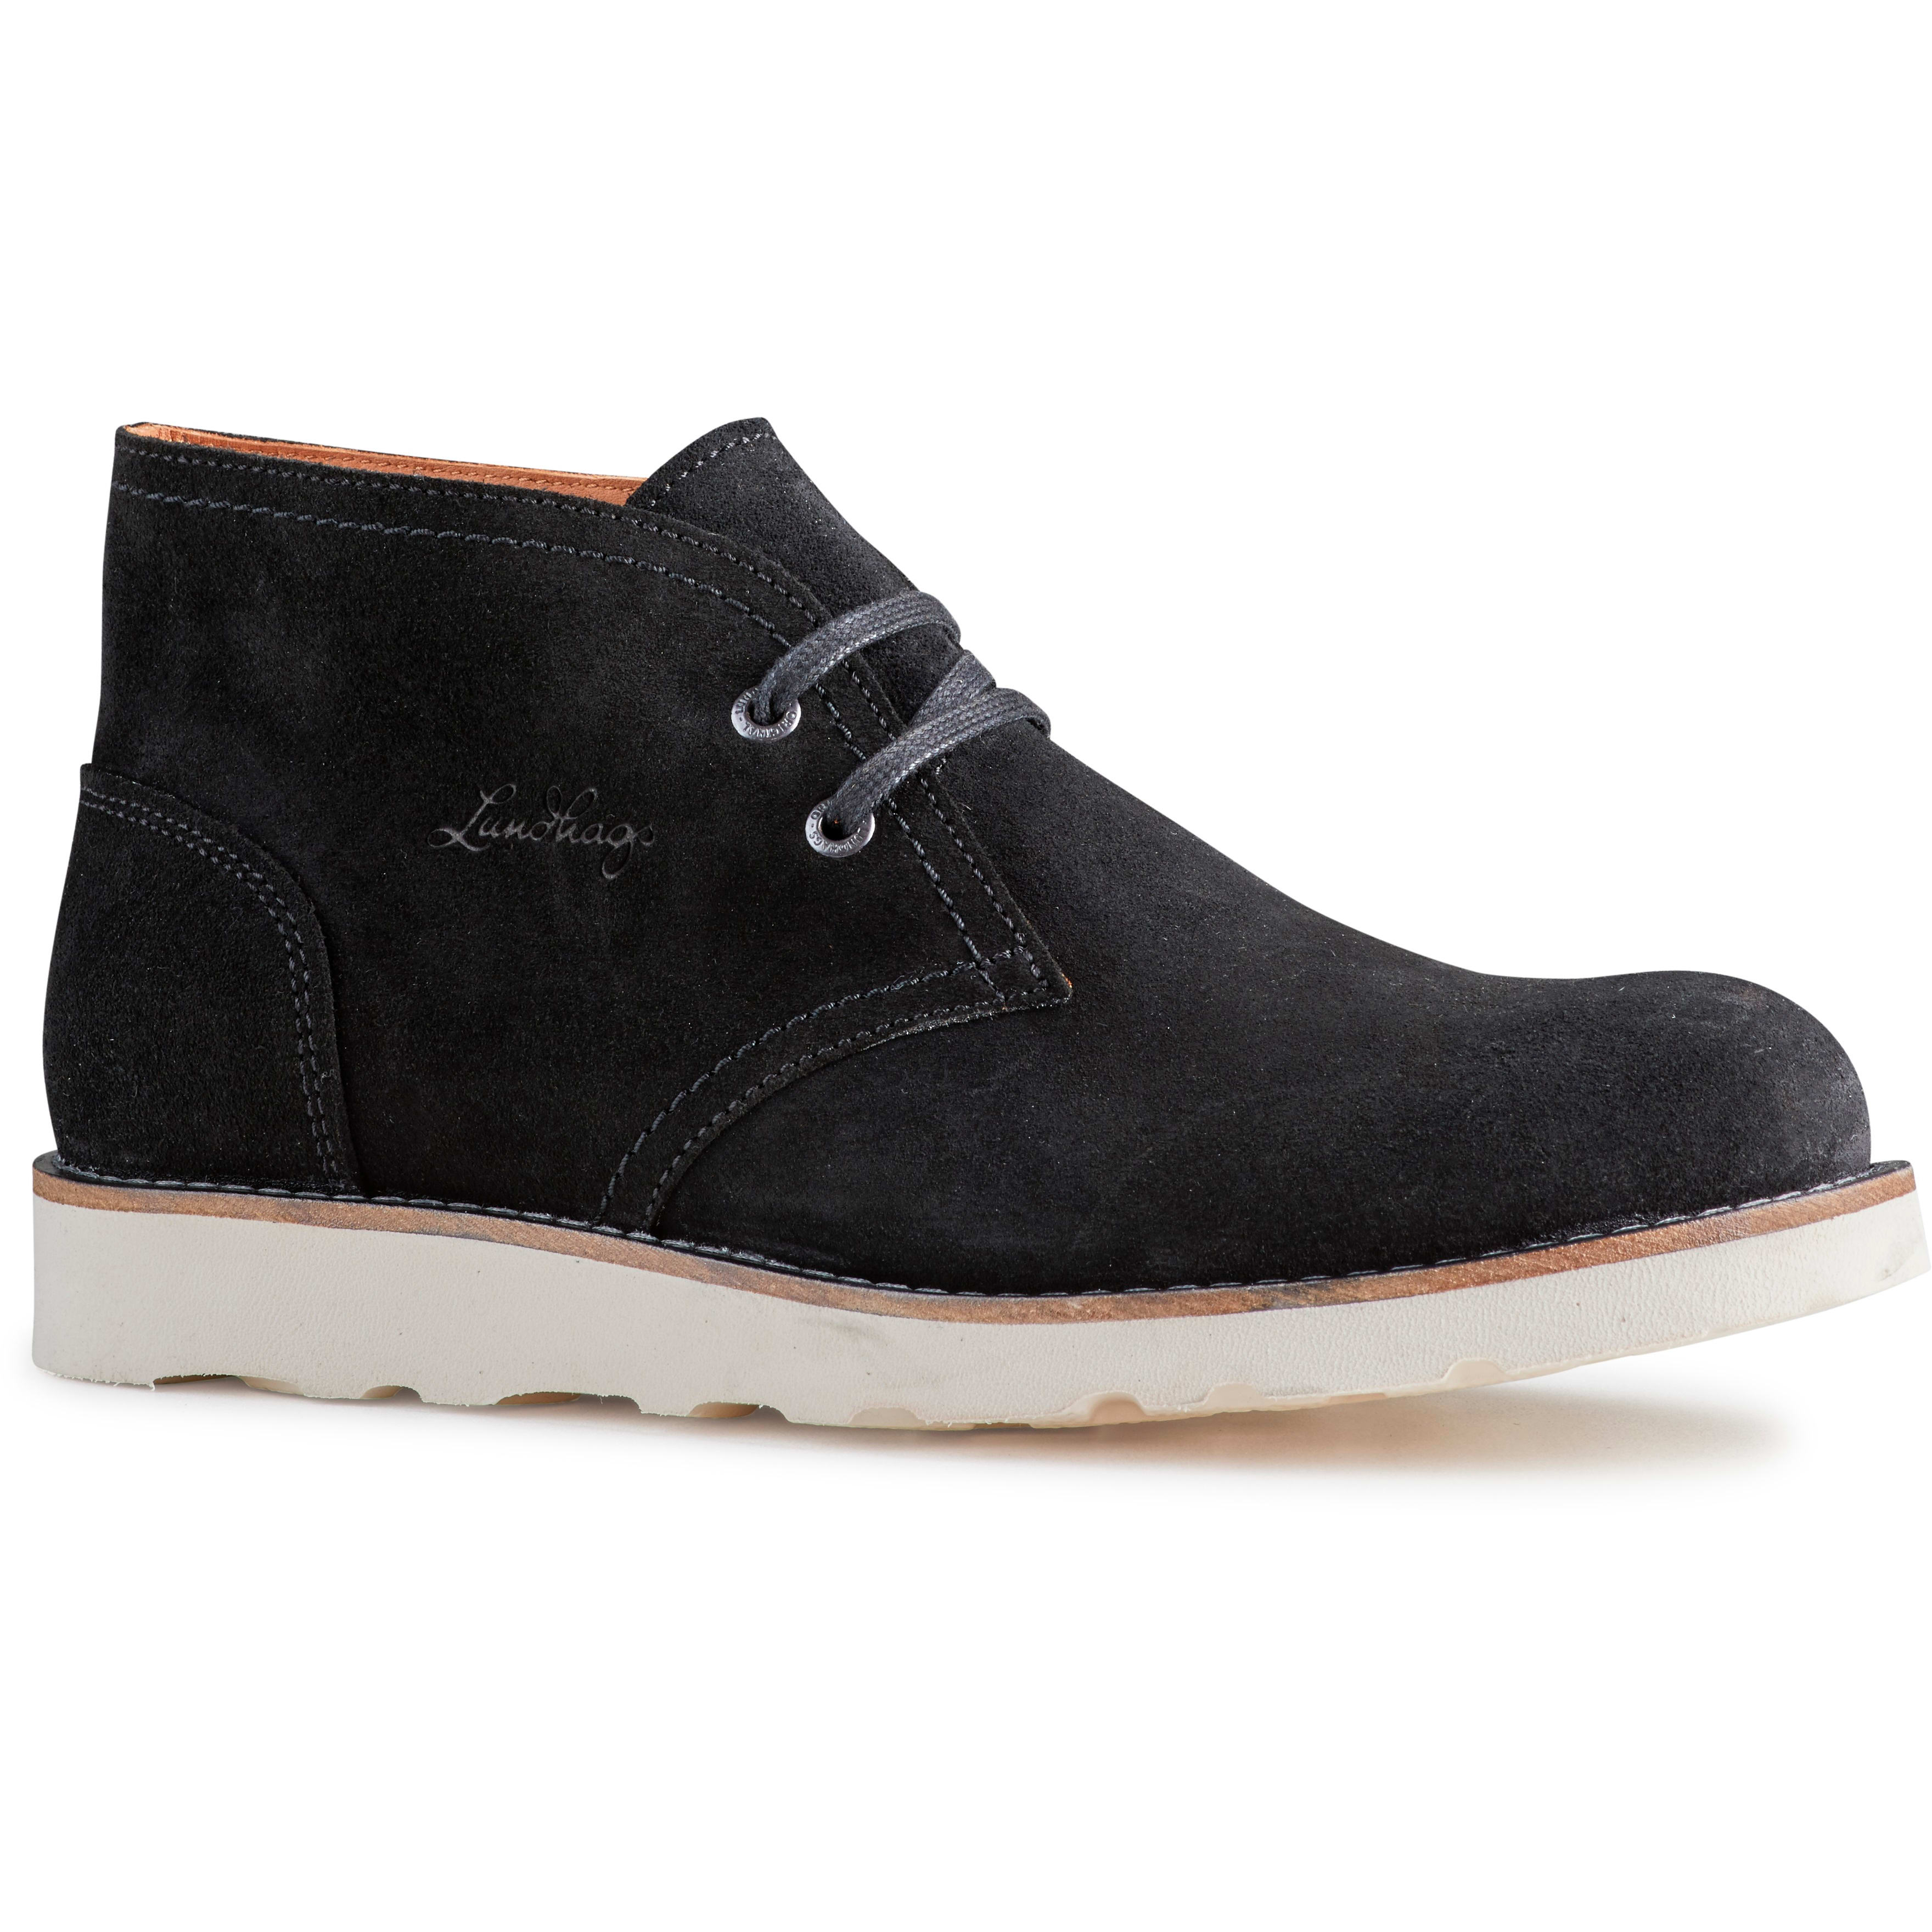 Buy Lundhags Desert Boot from Outnorth 0cbe96150d